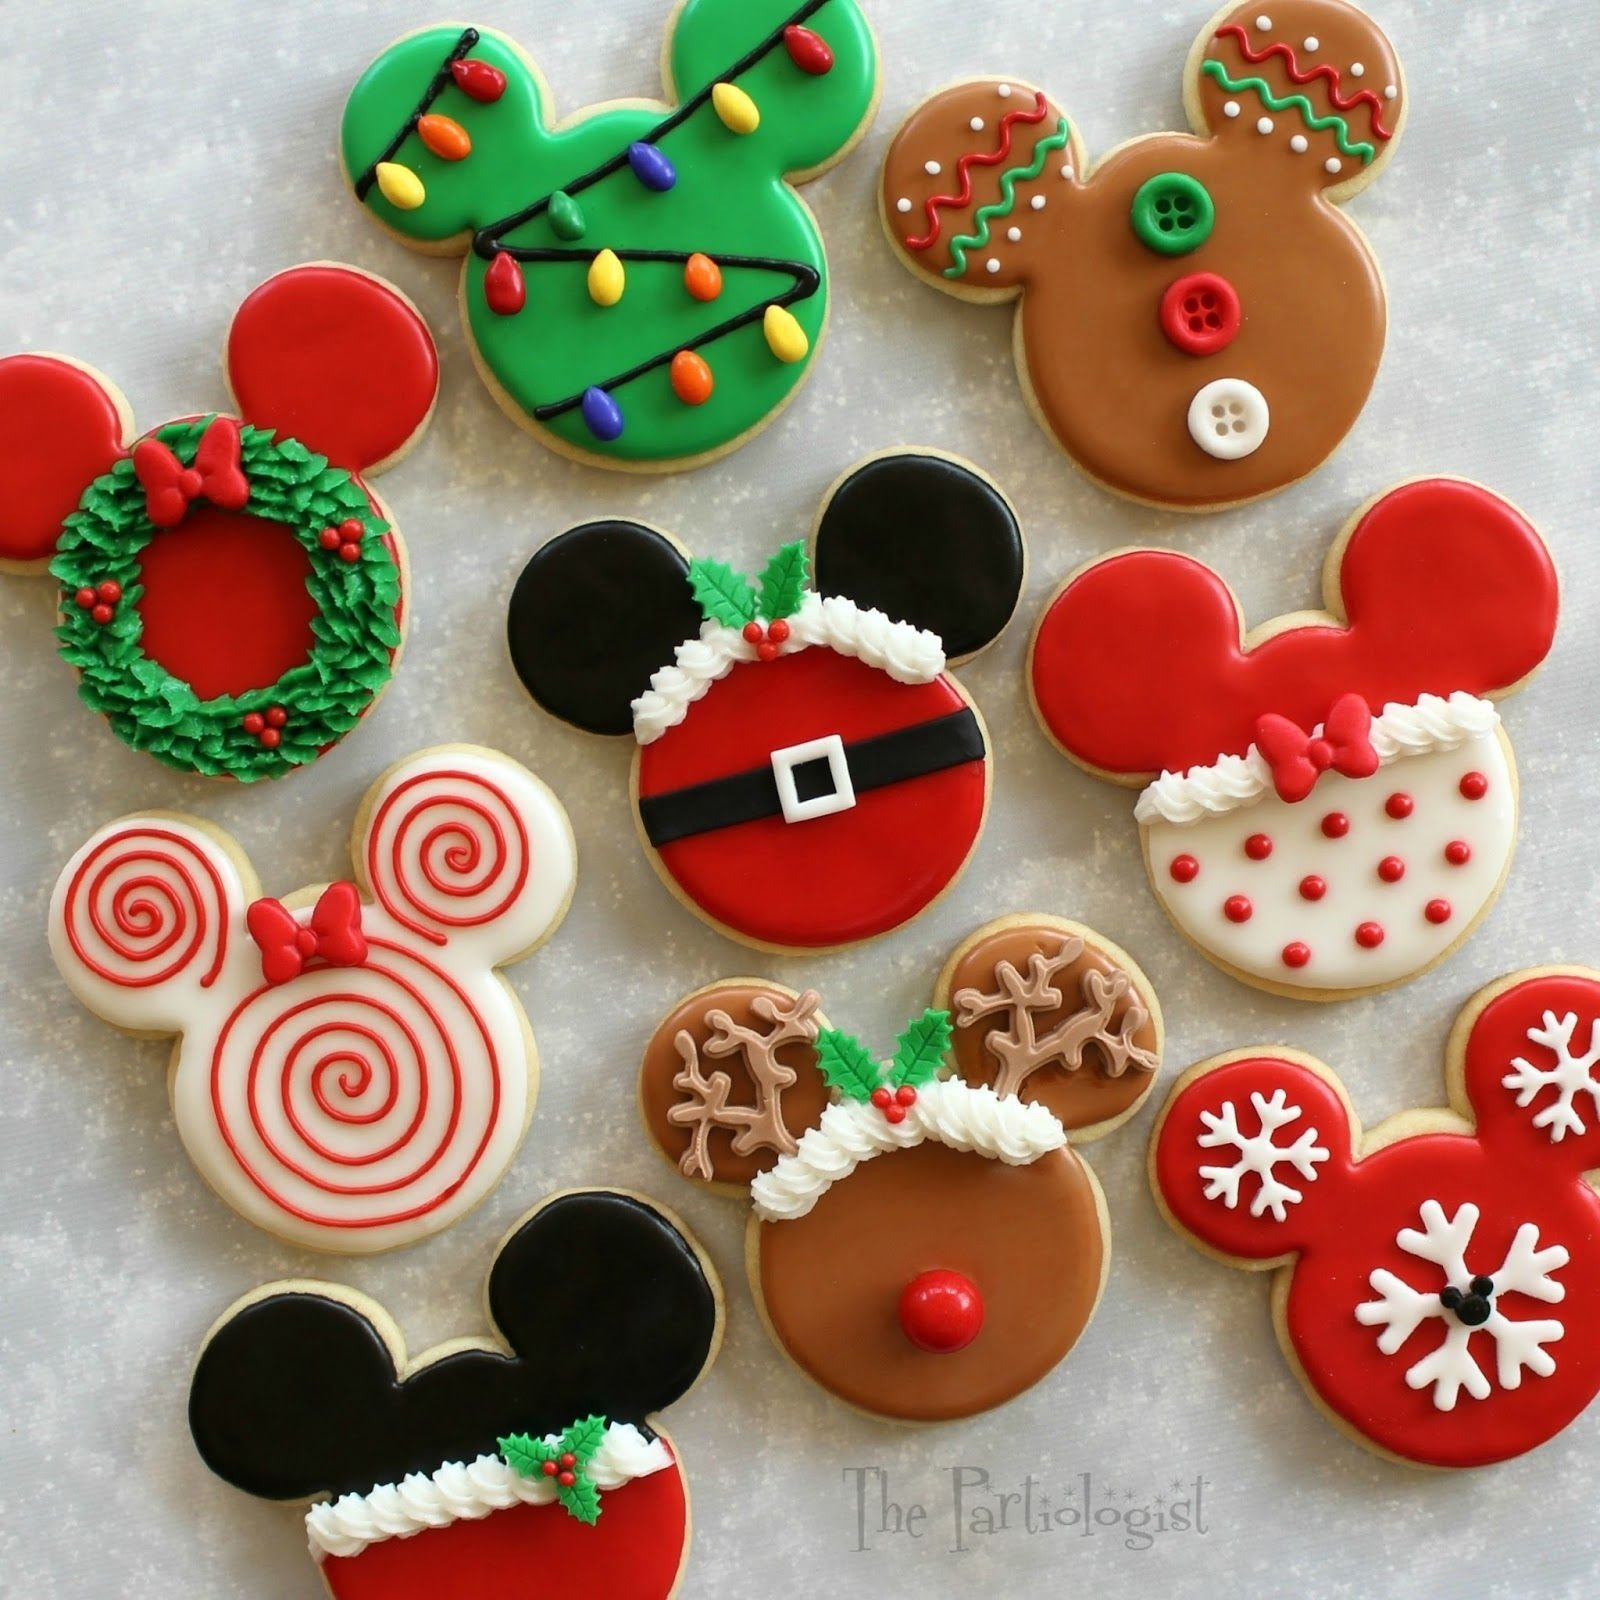 10 Perfect Christmas Cookie Ideas For Kids disney themed christmas cookies christmas cookies sugar cookies 2021